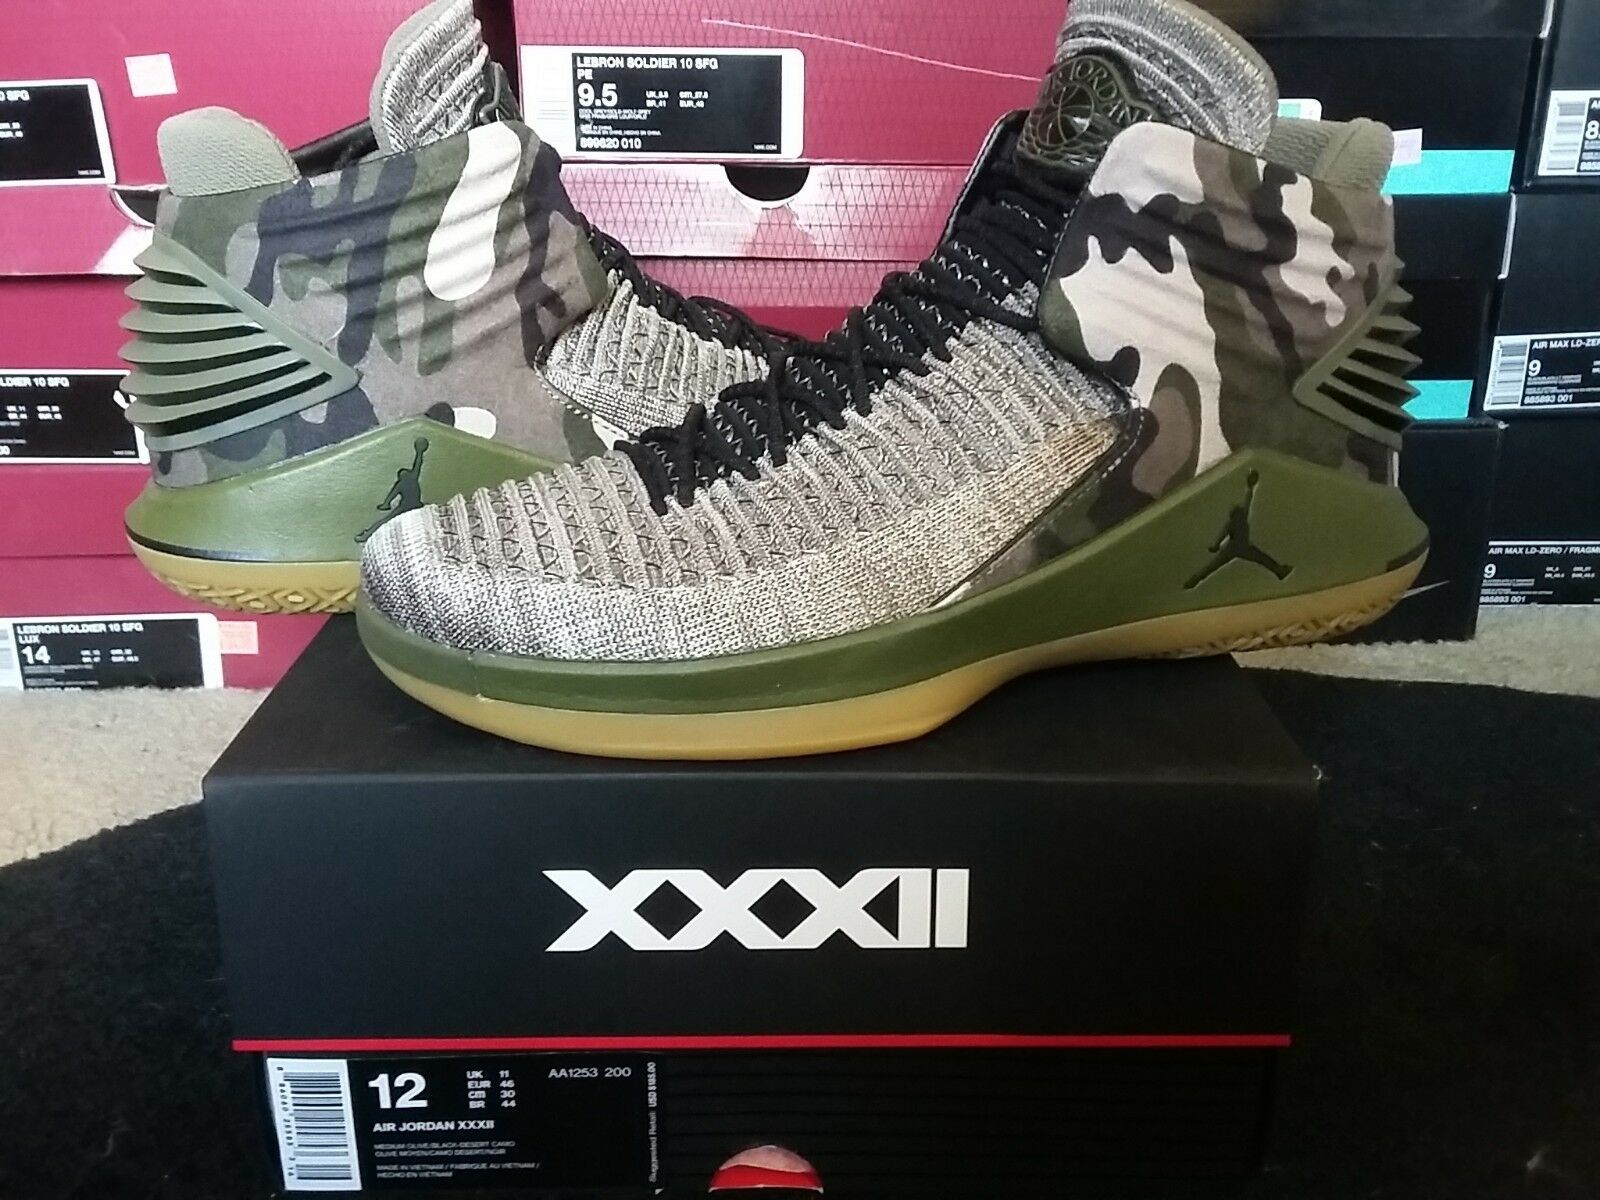 Nike Air Jordan XXXII 32 PE Veterans Day Unreleased Olive Desert Camo AA1253 200 The latest discount shoes for men and women